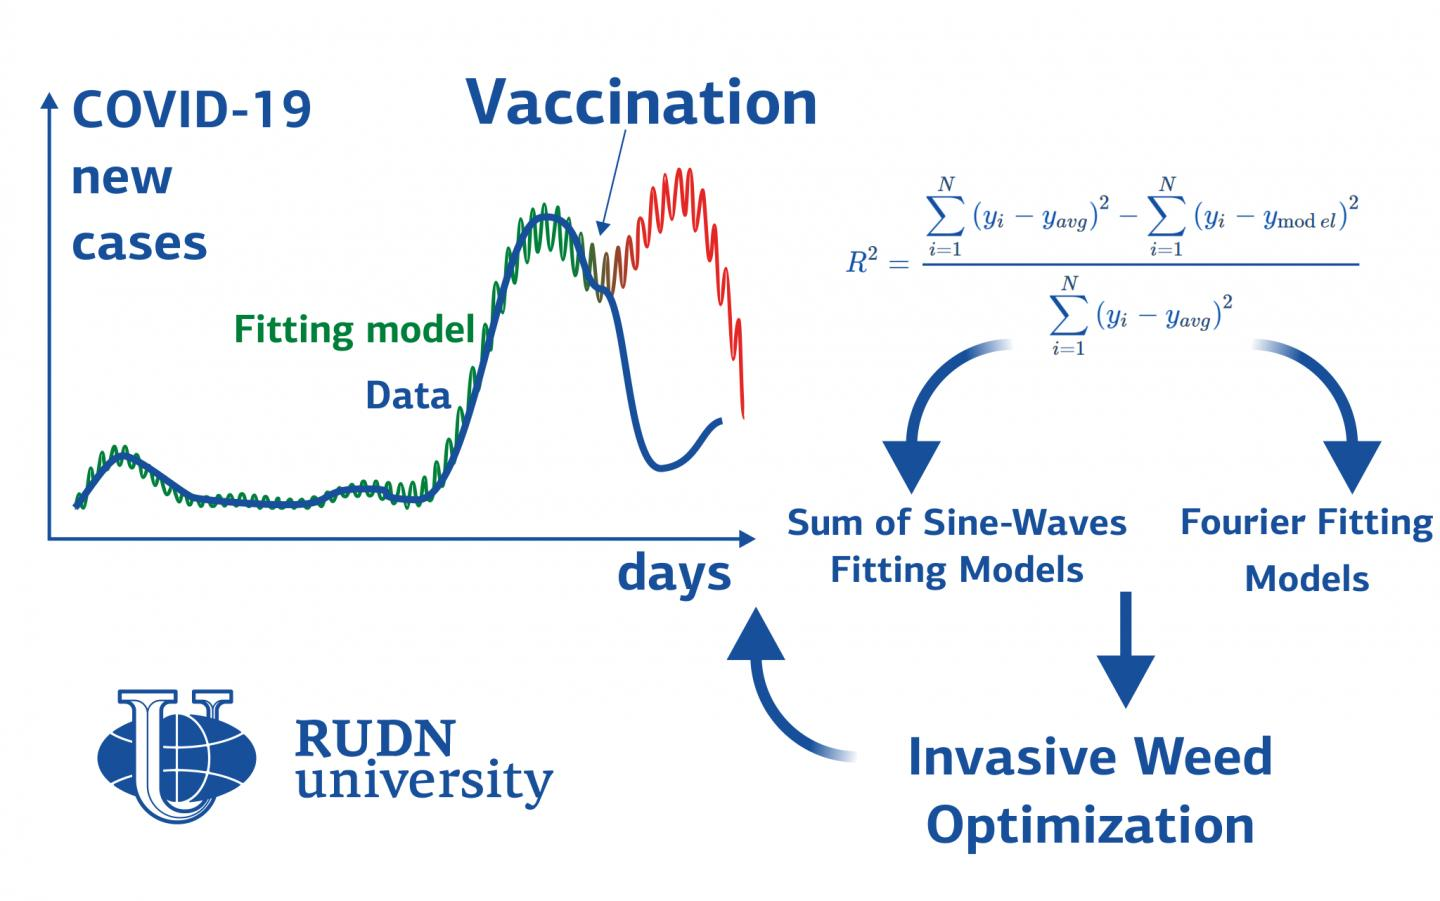 RUDN University Mathematician Builds a COVID-19 Spread Model -- It Shows How Vaccination Affect Pandemic